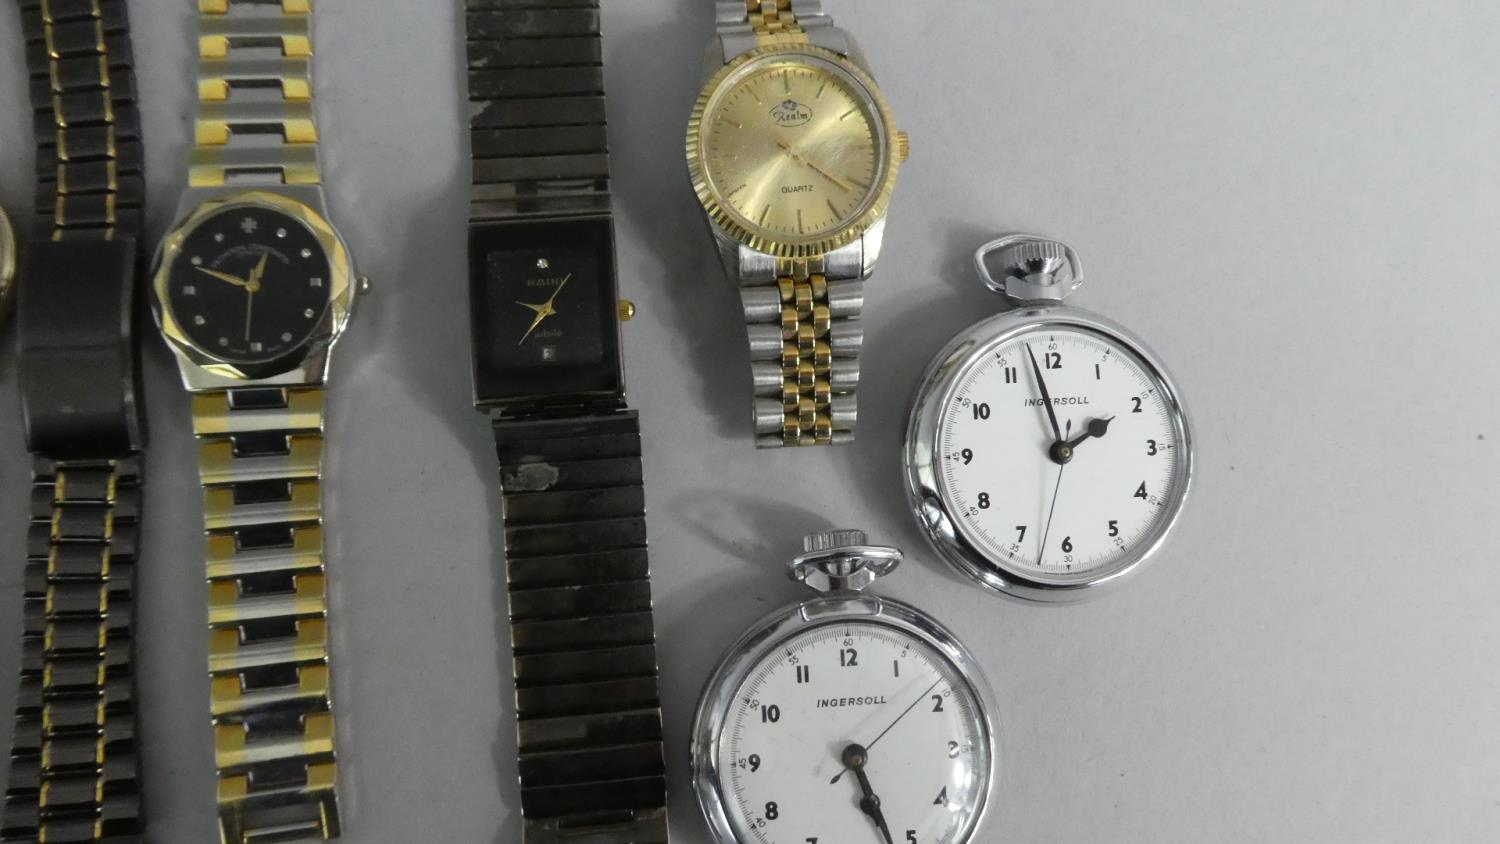 Lot 334 - A Collection of Various Vintage and Replica Wrist Watches and Pocket Watches.